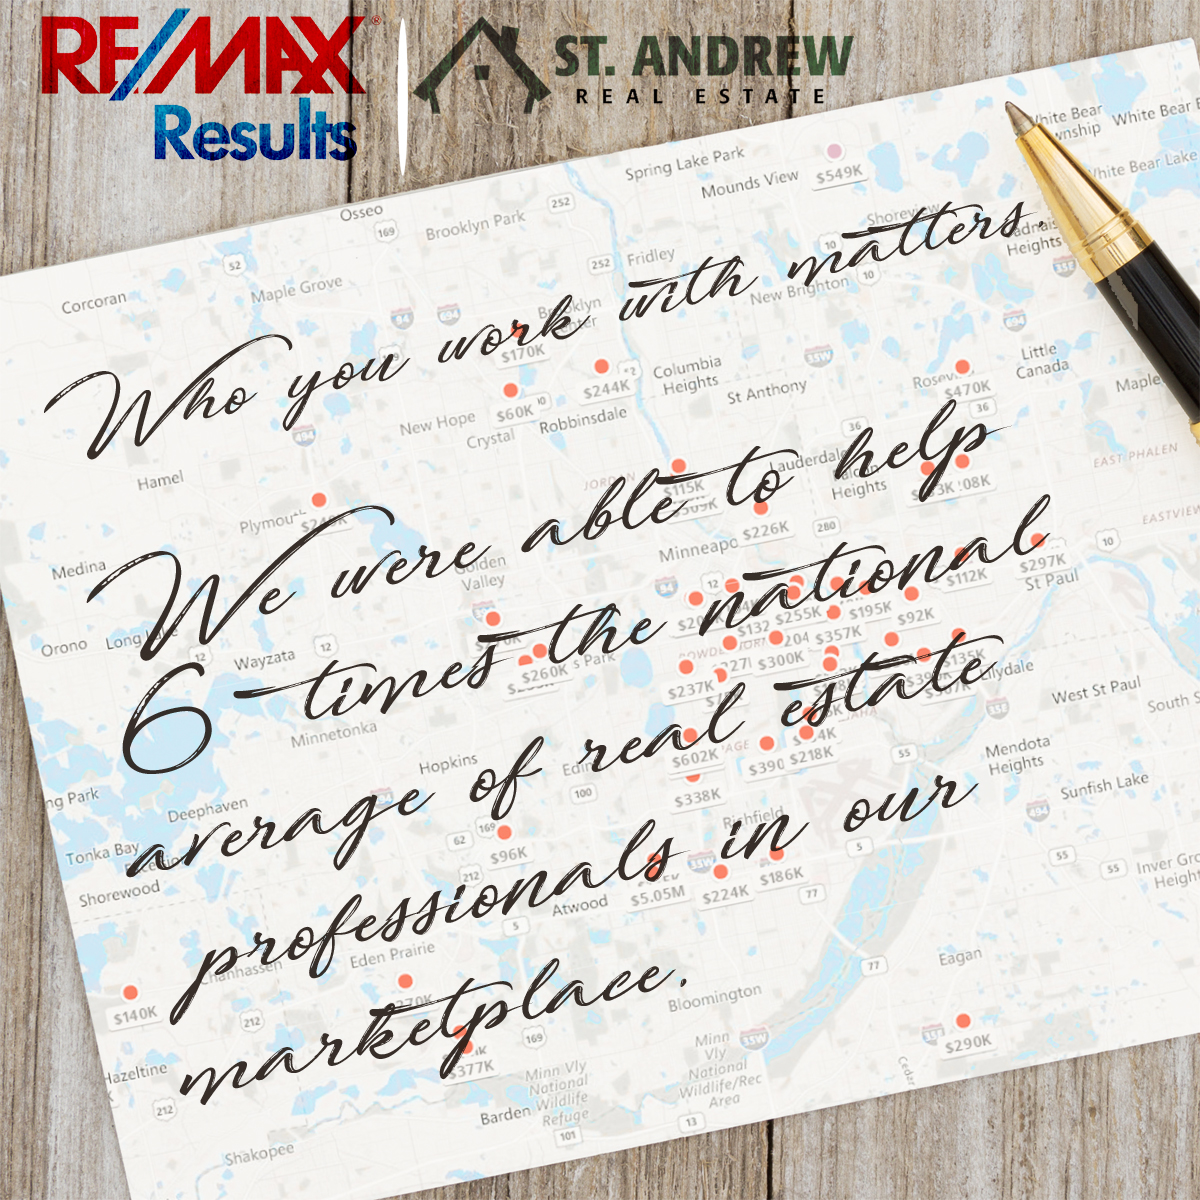 Remax Results Real Estate Marketing Design